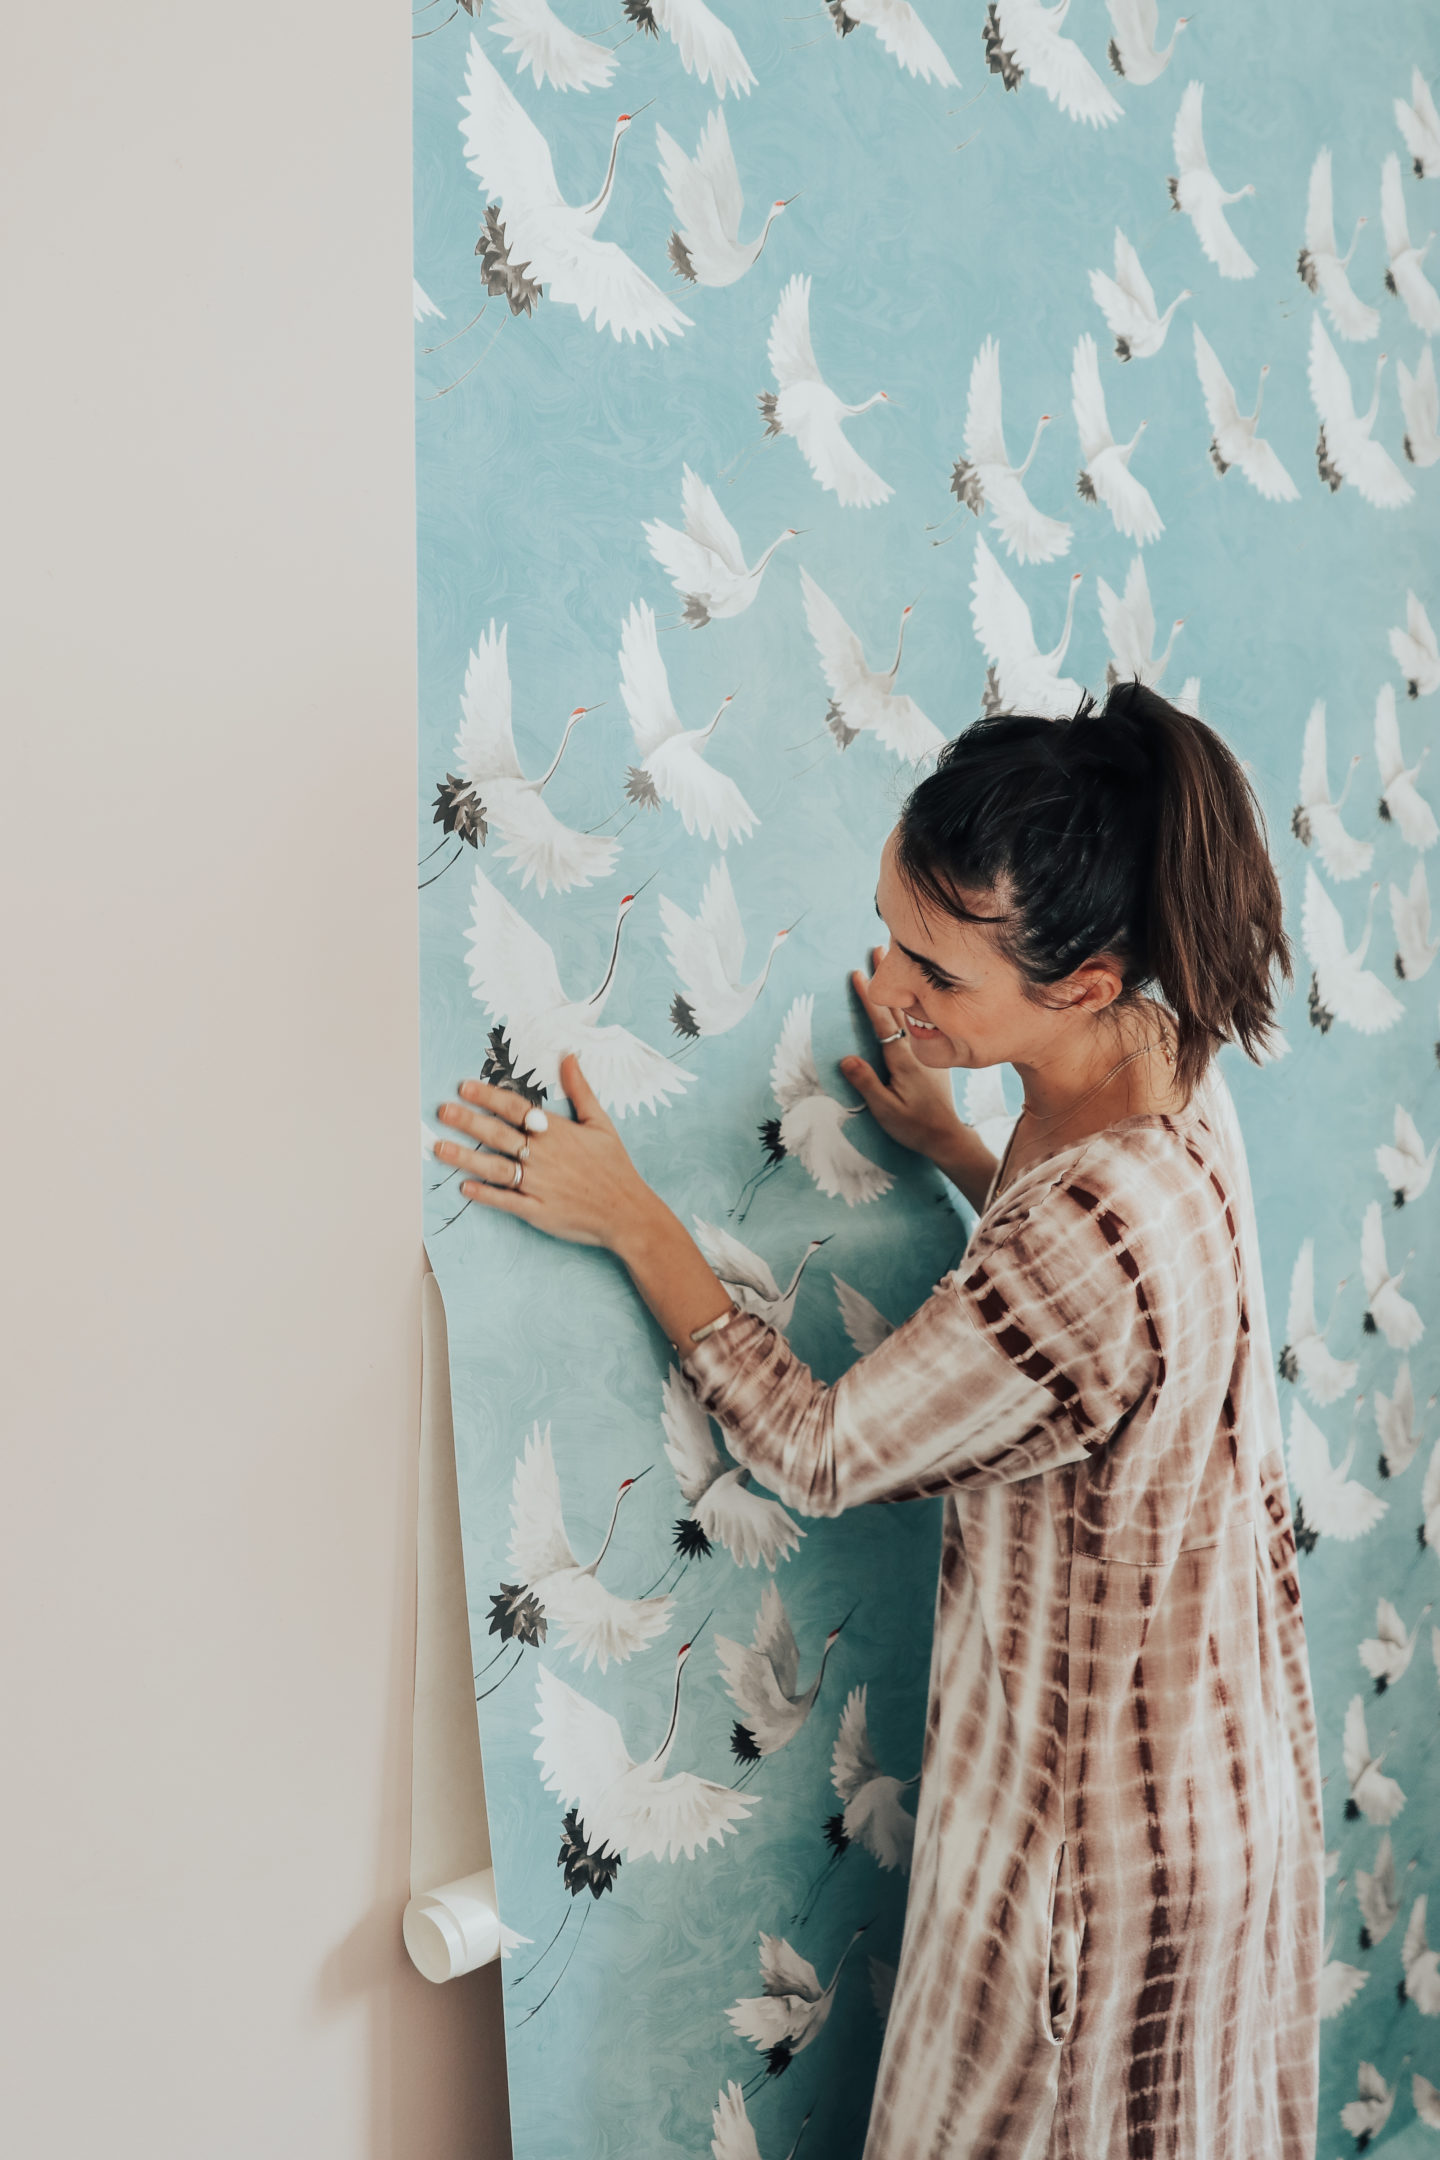 Redecorating With Wallpops! Halcyon Peel and Stick NuWallpaper - thecasualfree.com